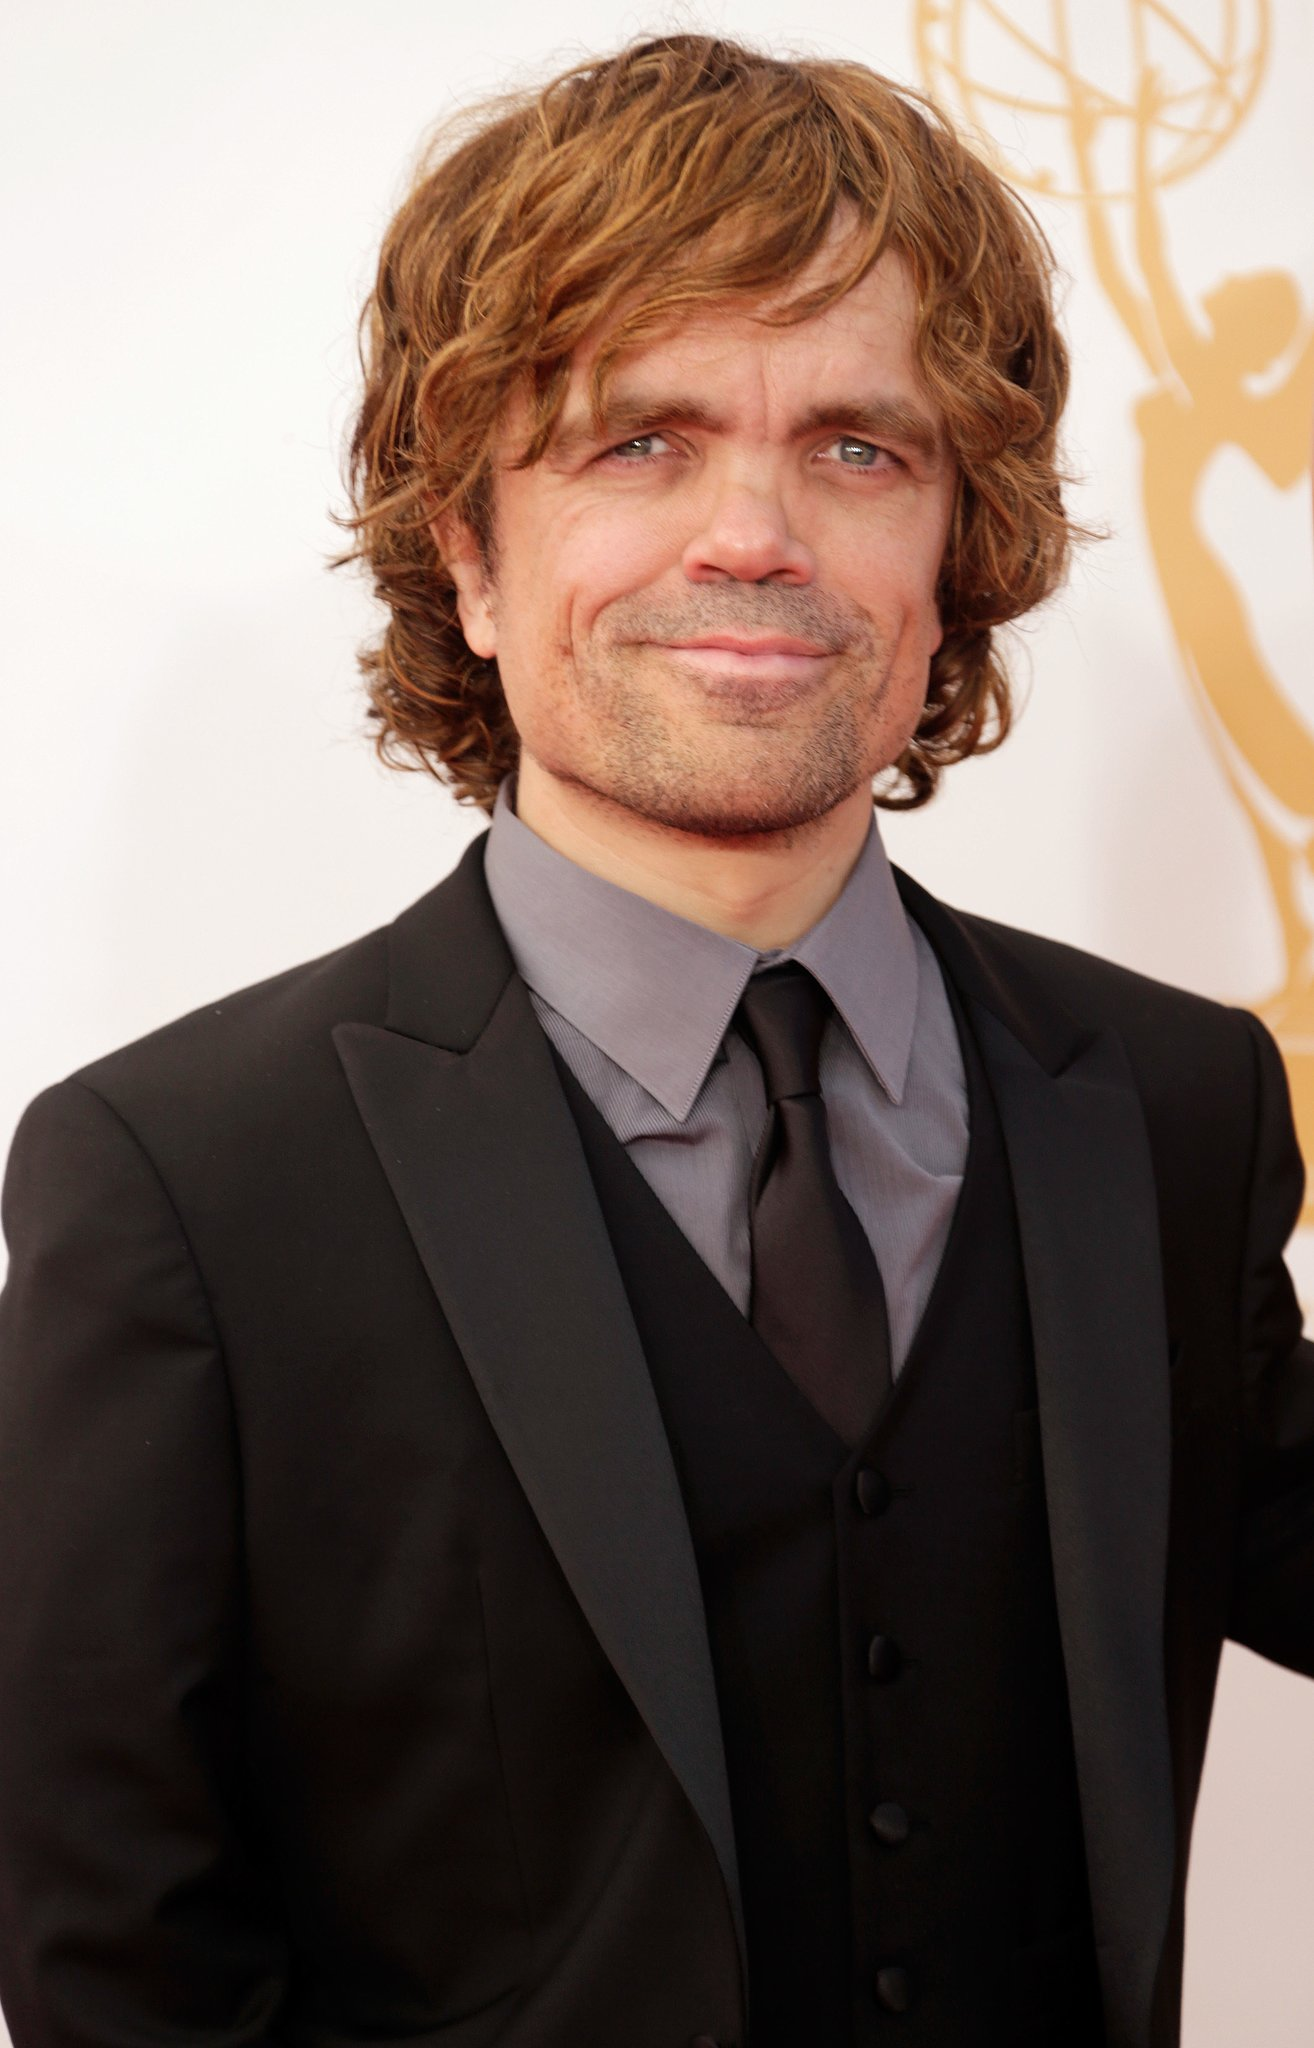 Peter Dinklage will star in an R-rated comedy as a man who tells    Peter Dinklage